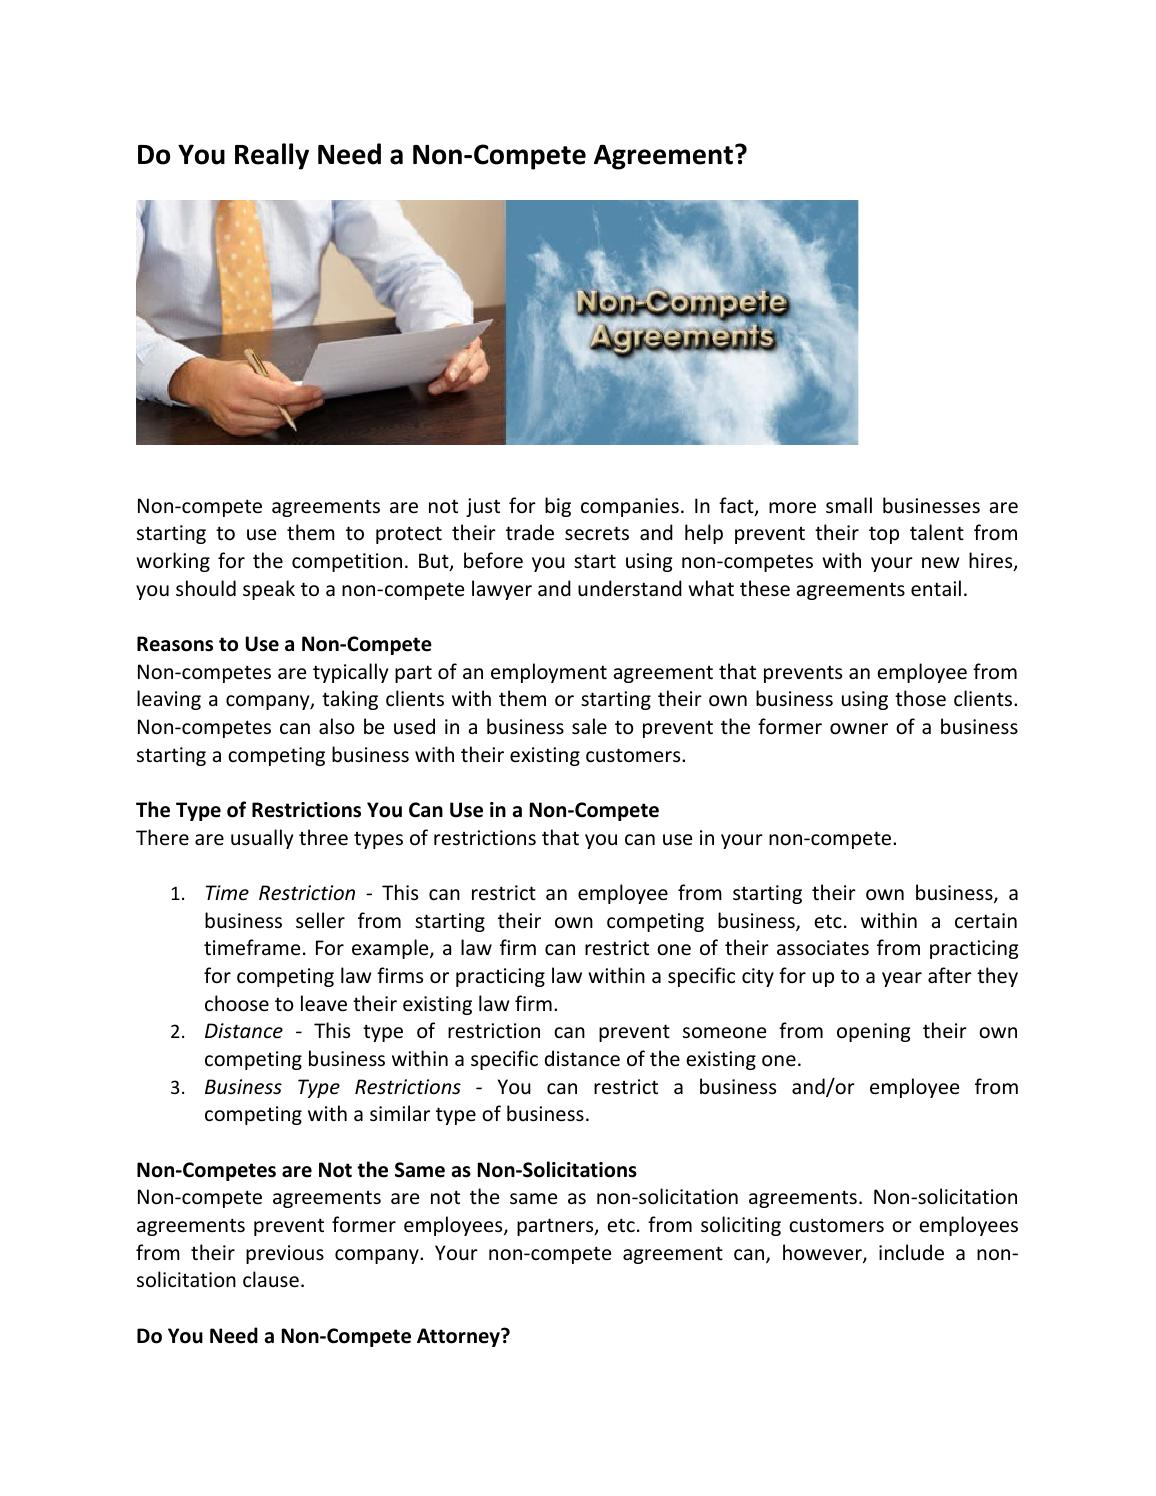 Do You Really Need A Non Compete Agreement By Kenziebahari Issuu